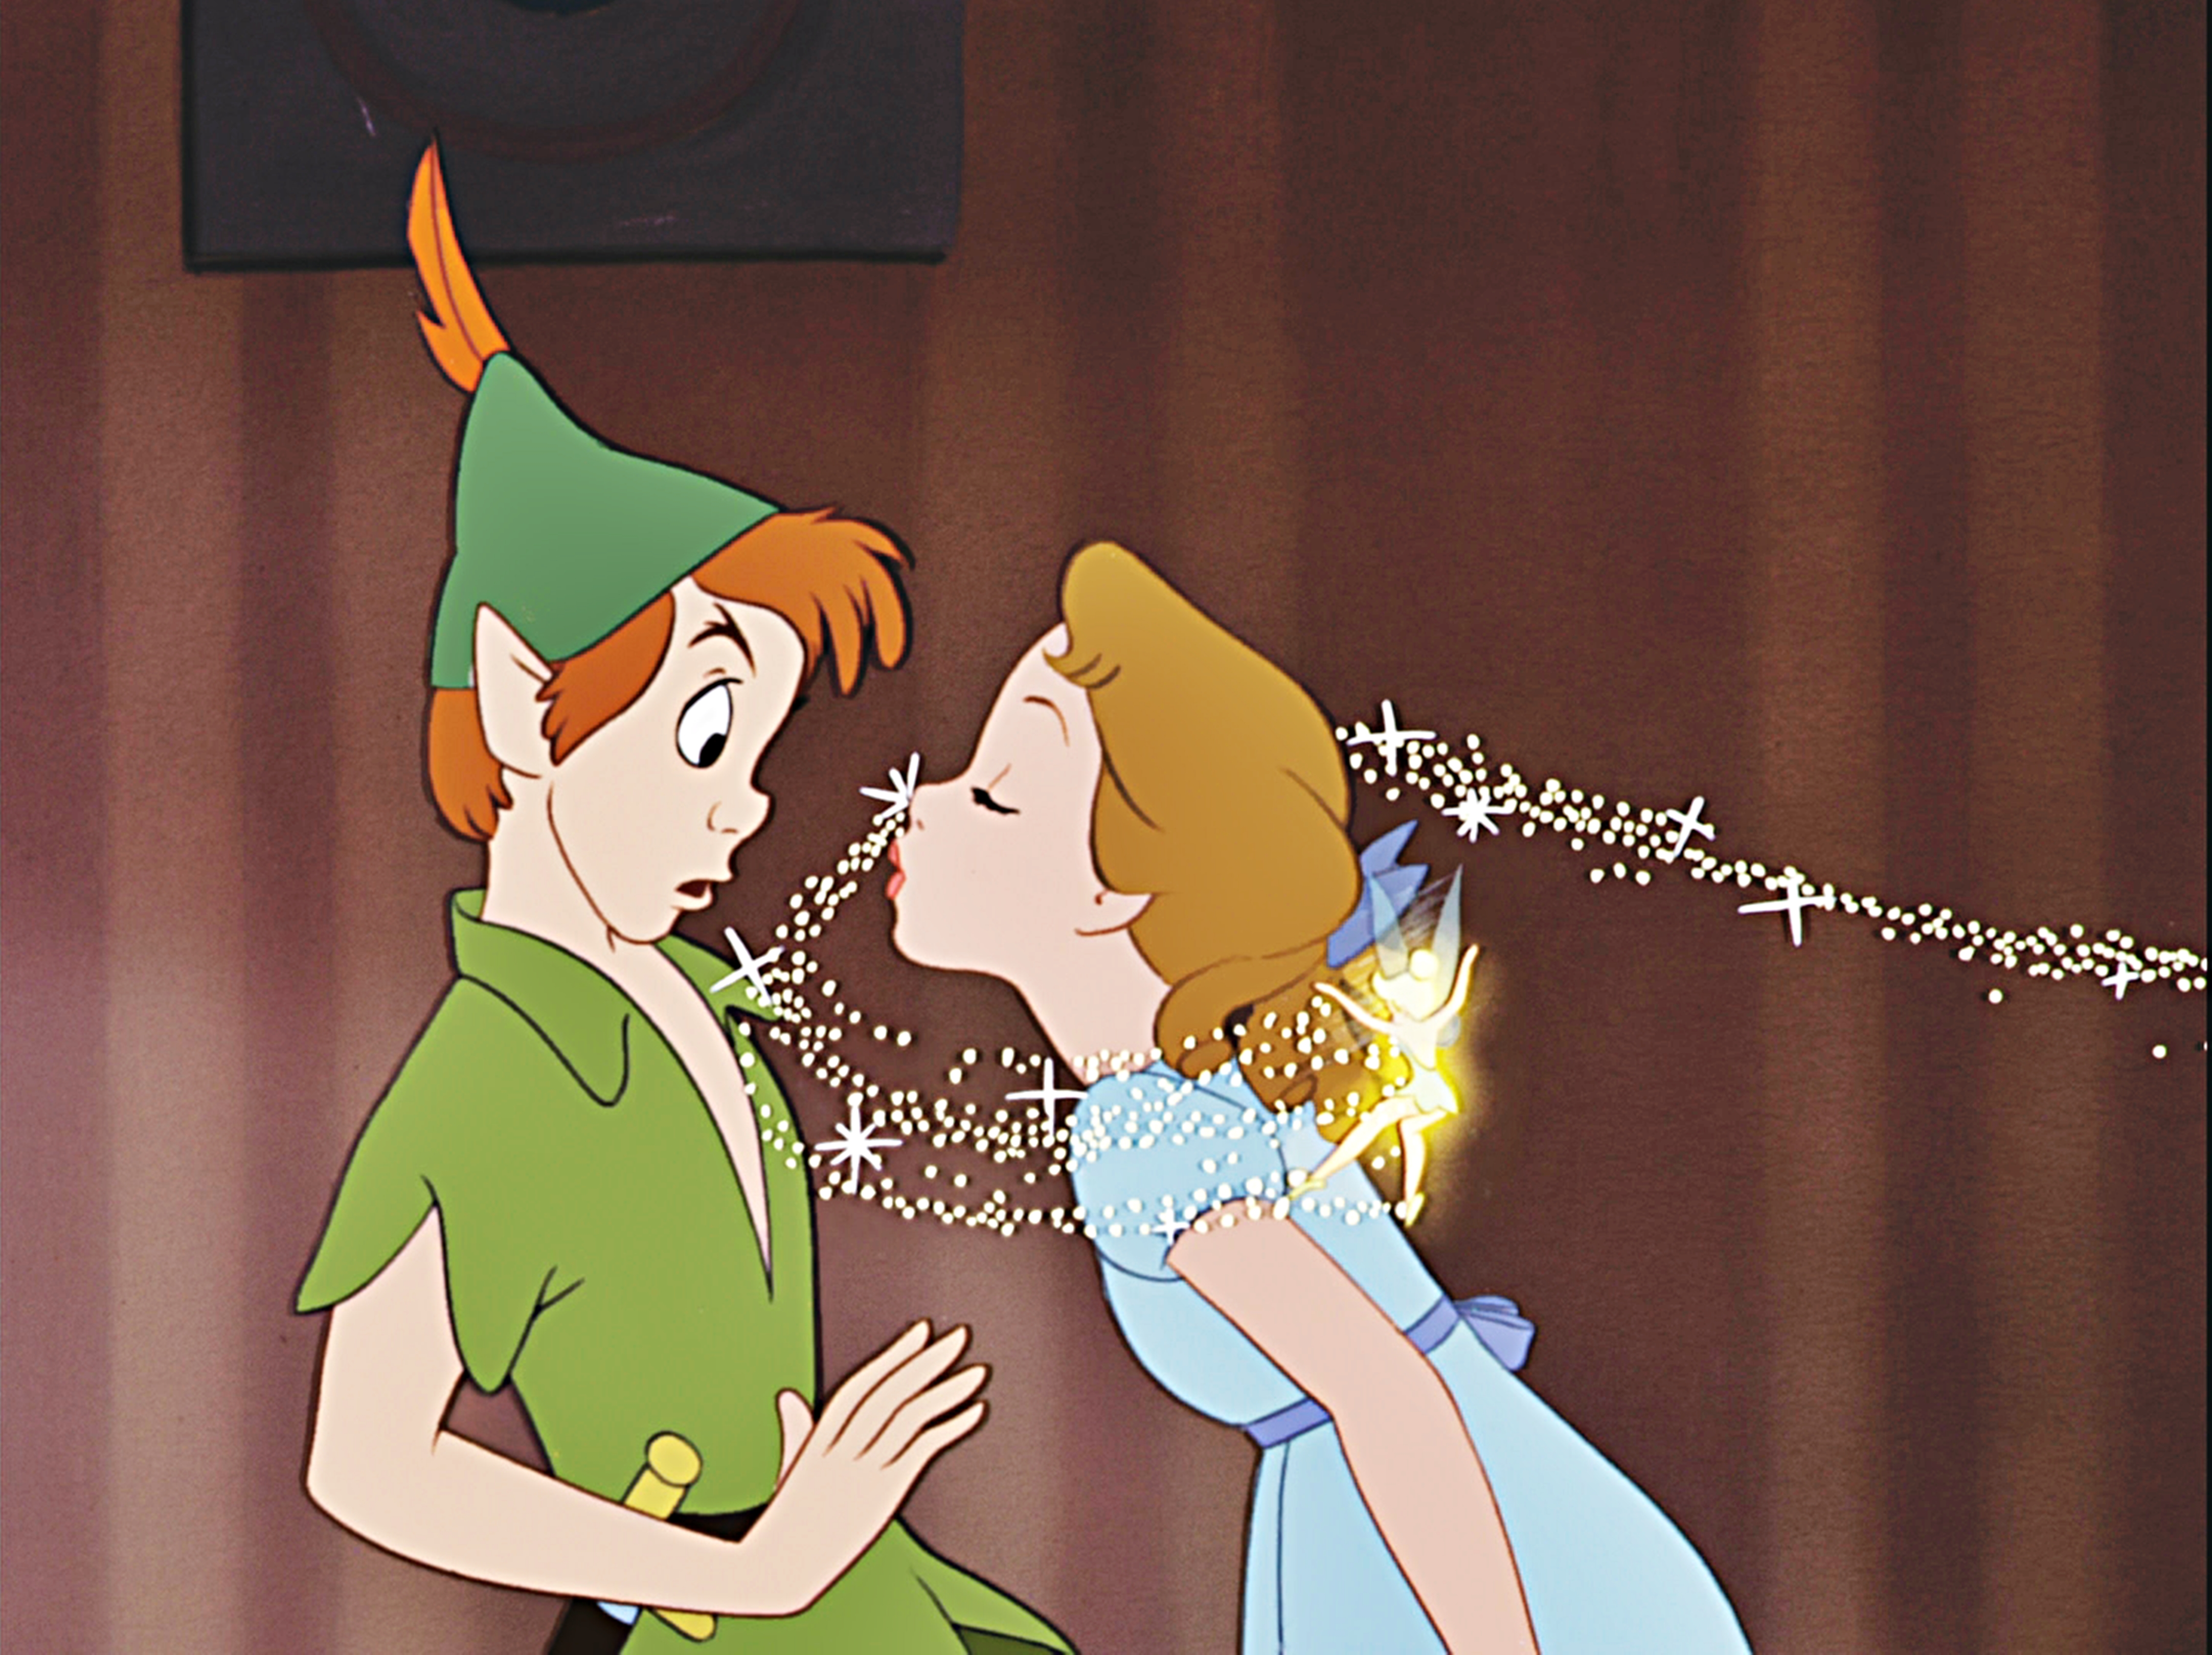 peter pan and wendy relationship